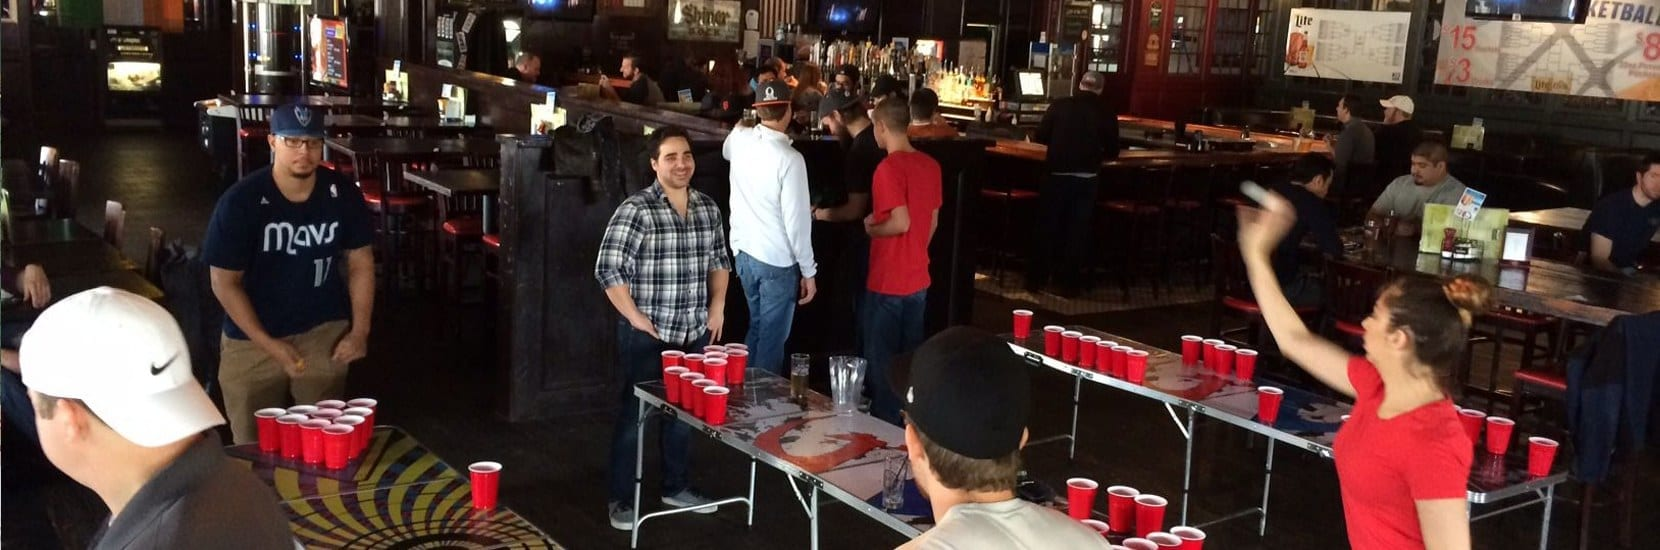 beer pong tournaments in Fort Worth